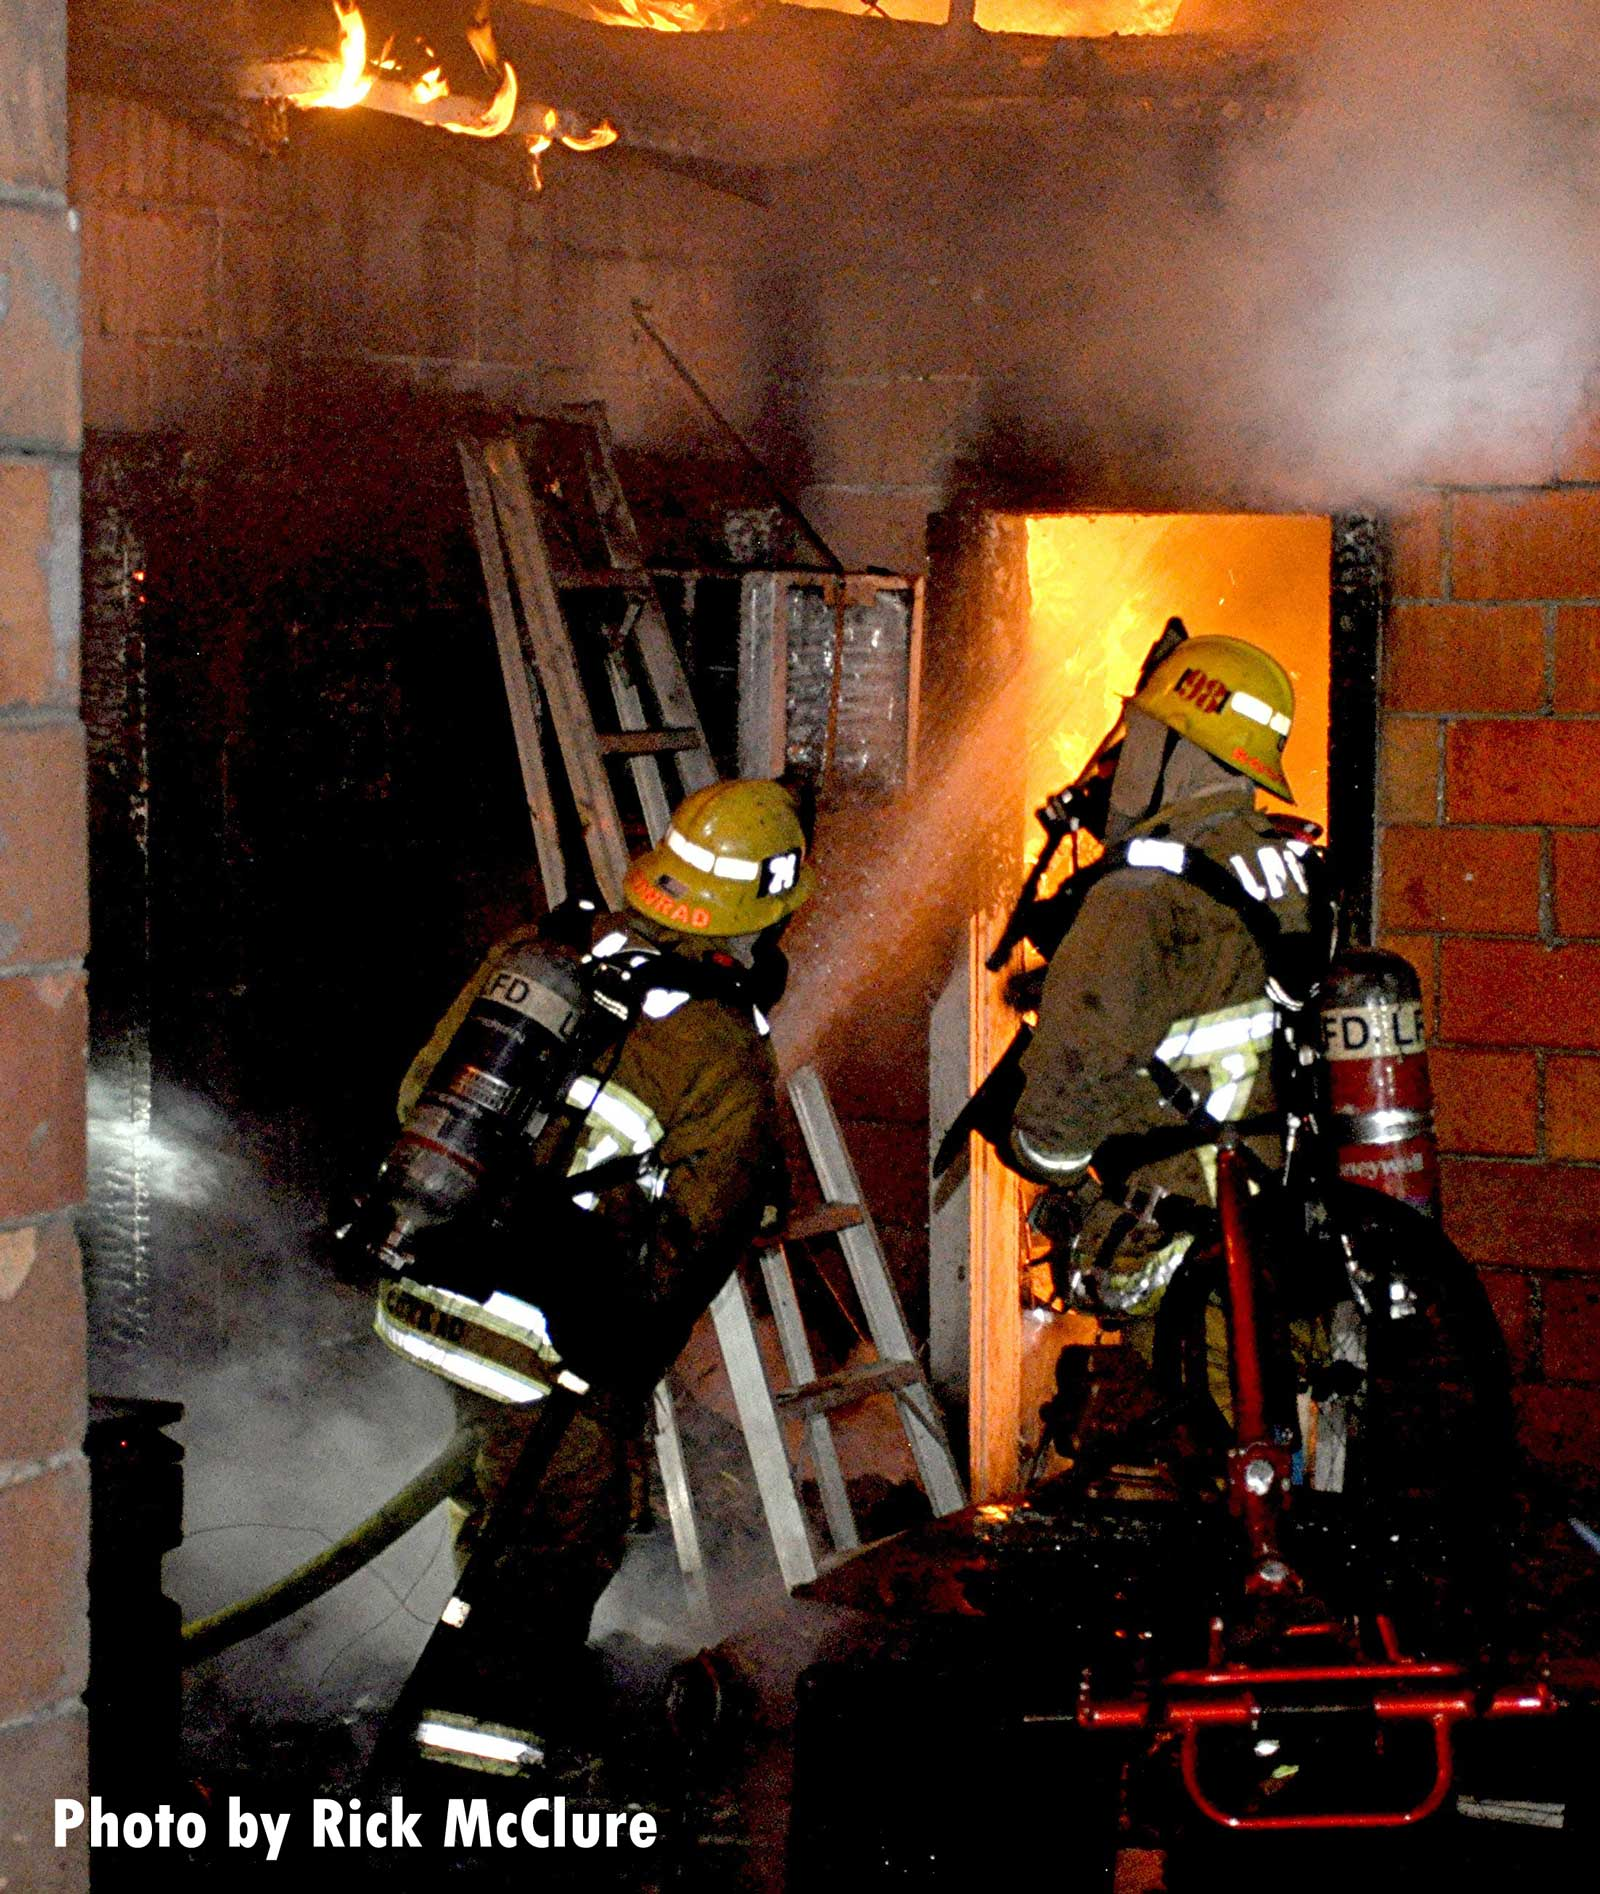 A firefighter blasts water through a doorway on flames